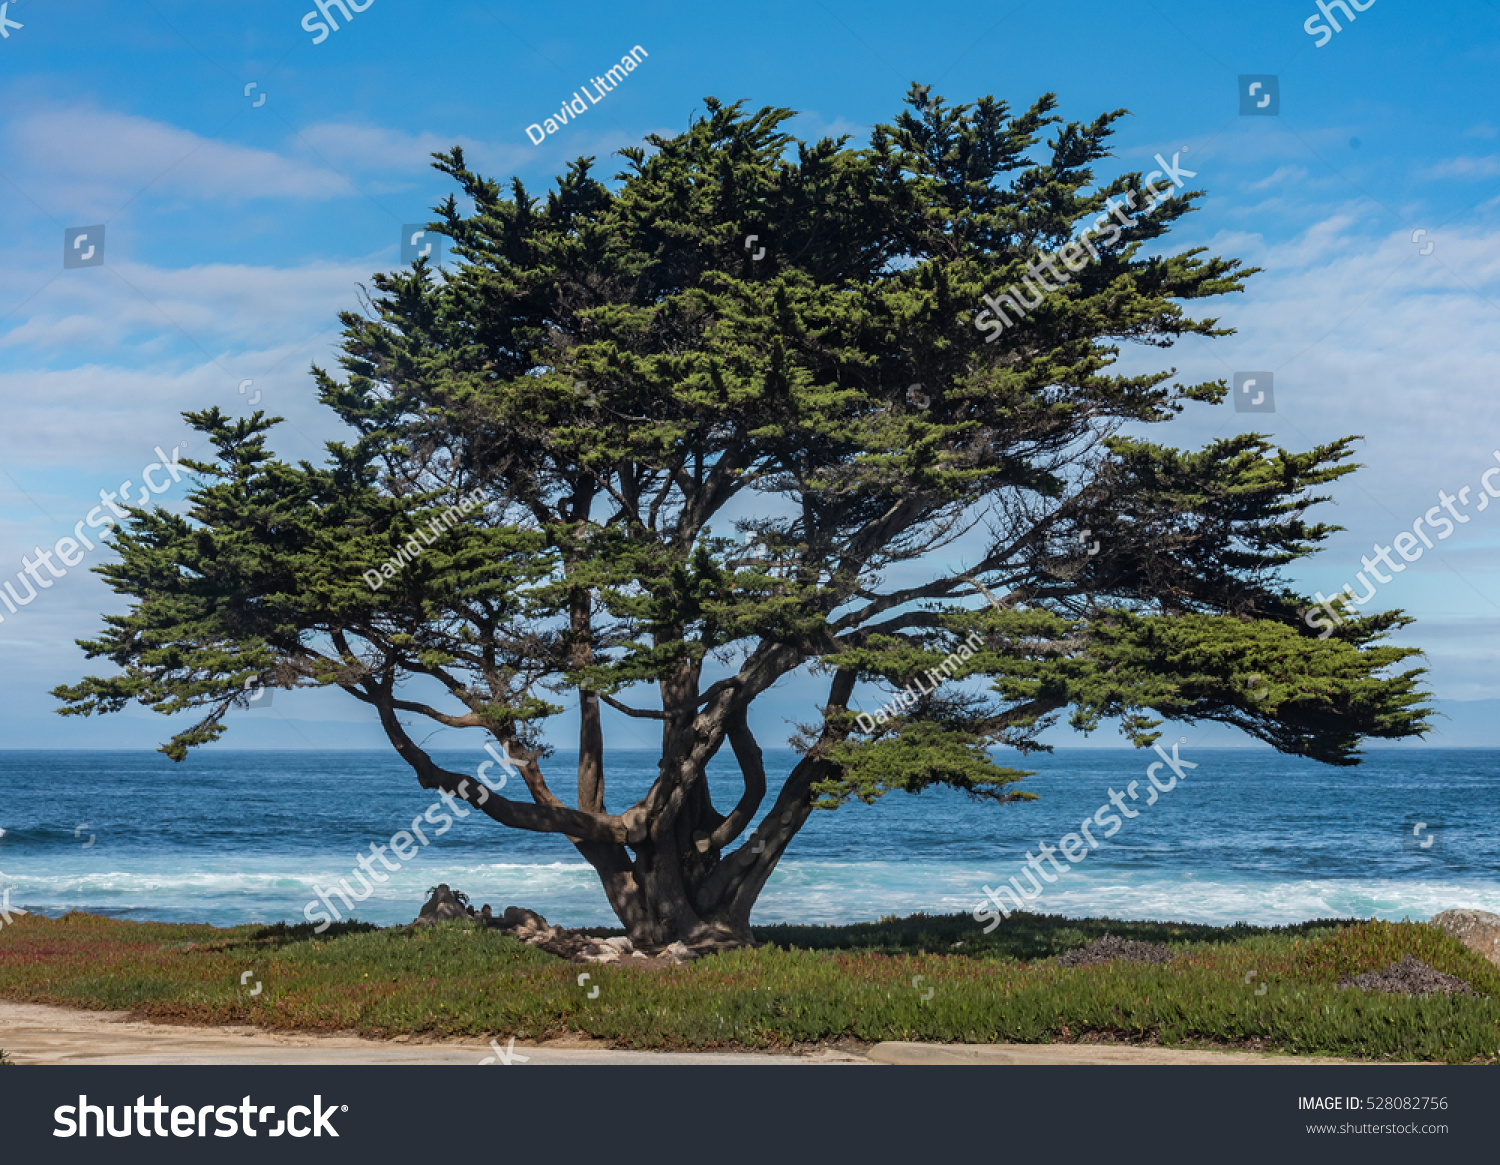 A lone Monterey Cypress tree (Cupressus macrocarpa) stands along the beach of the rocky Pacific Coast of Monterey Bay in central California.